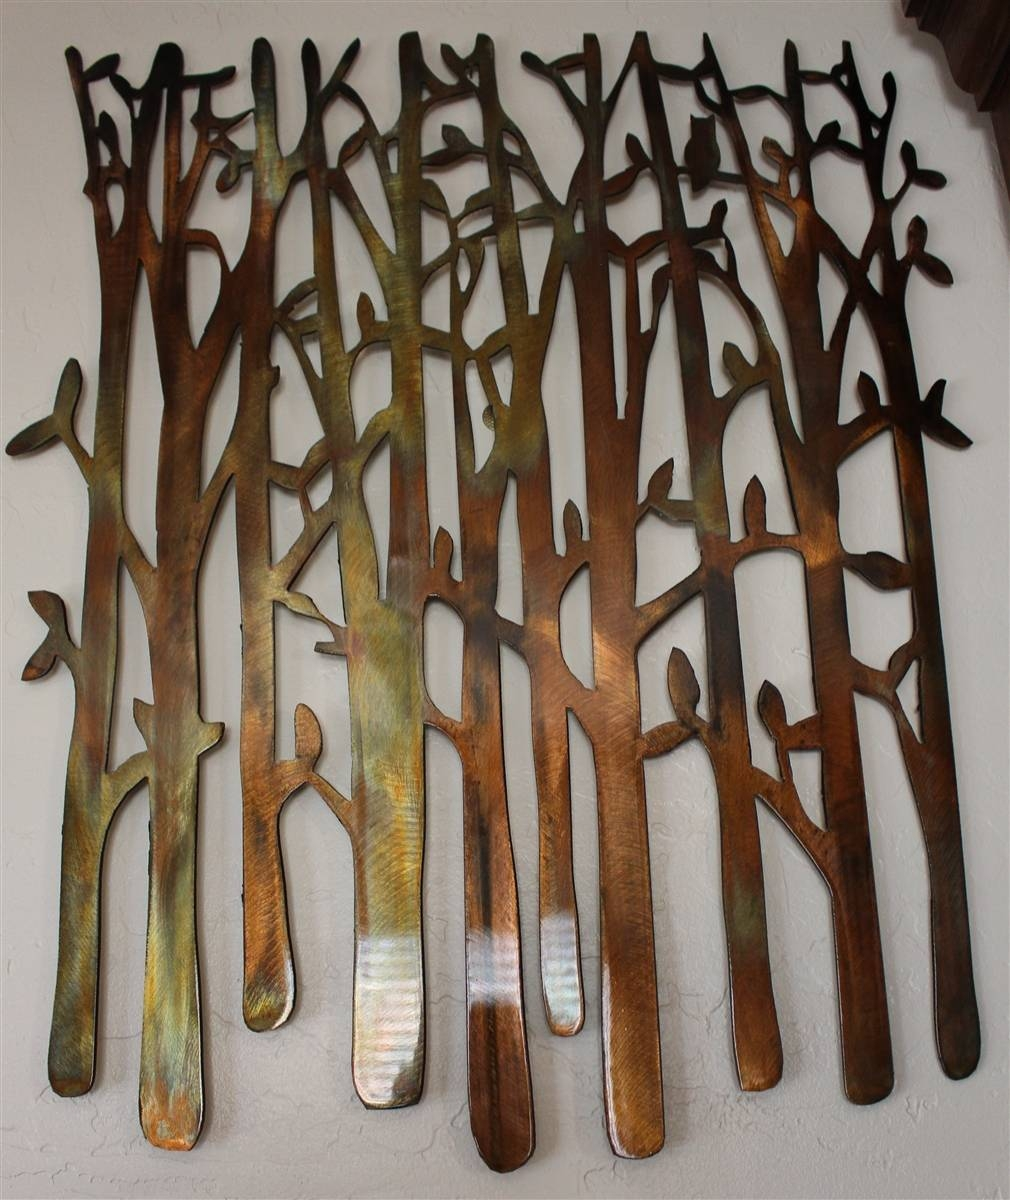 Birch Tree, Birch Tree Metal Art, Bamboo, Bird In The Trees, Bird With Regard To Most Up To Date Bird Metal Wall Art (View 2 of 20)